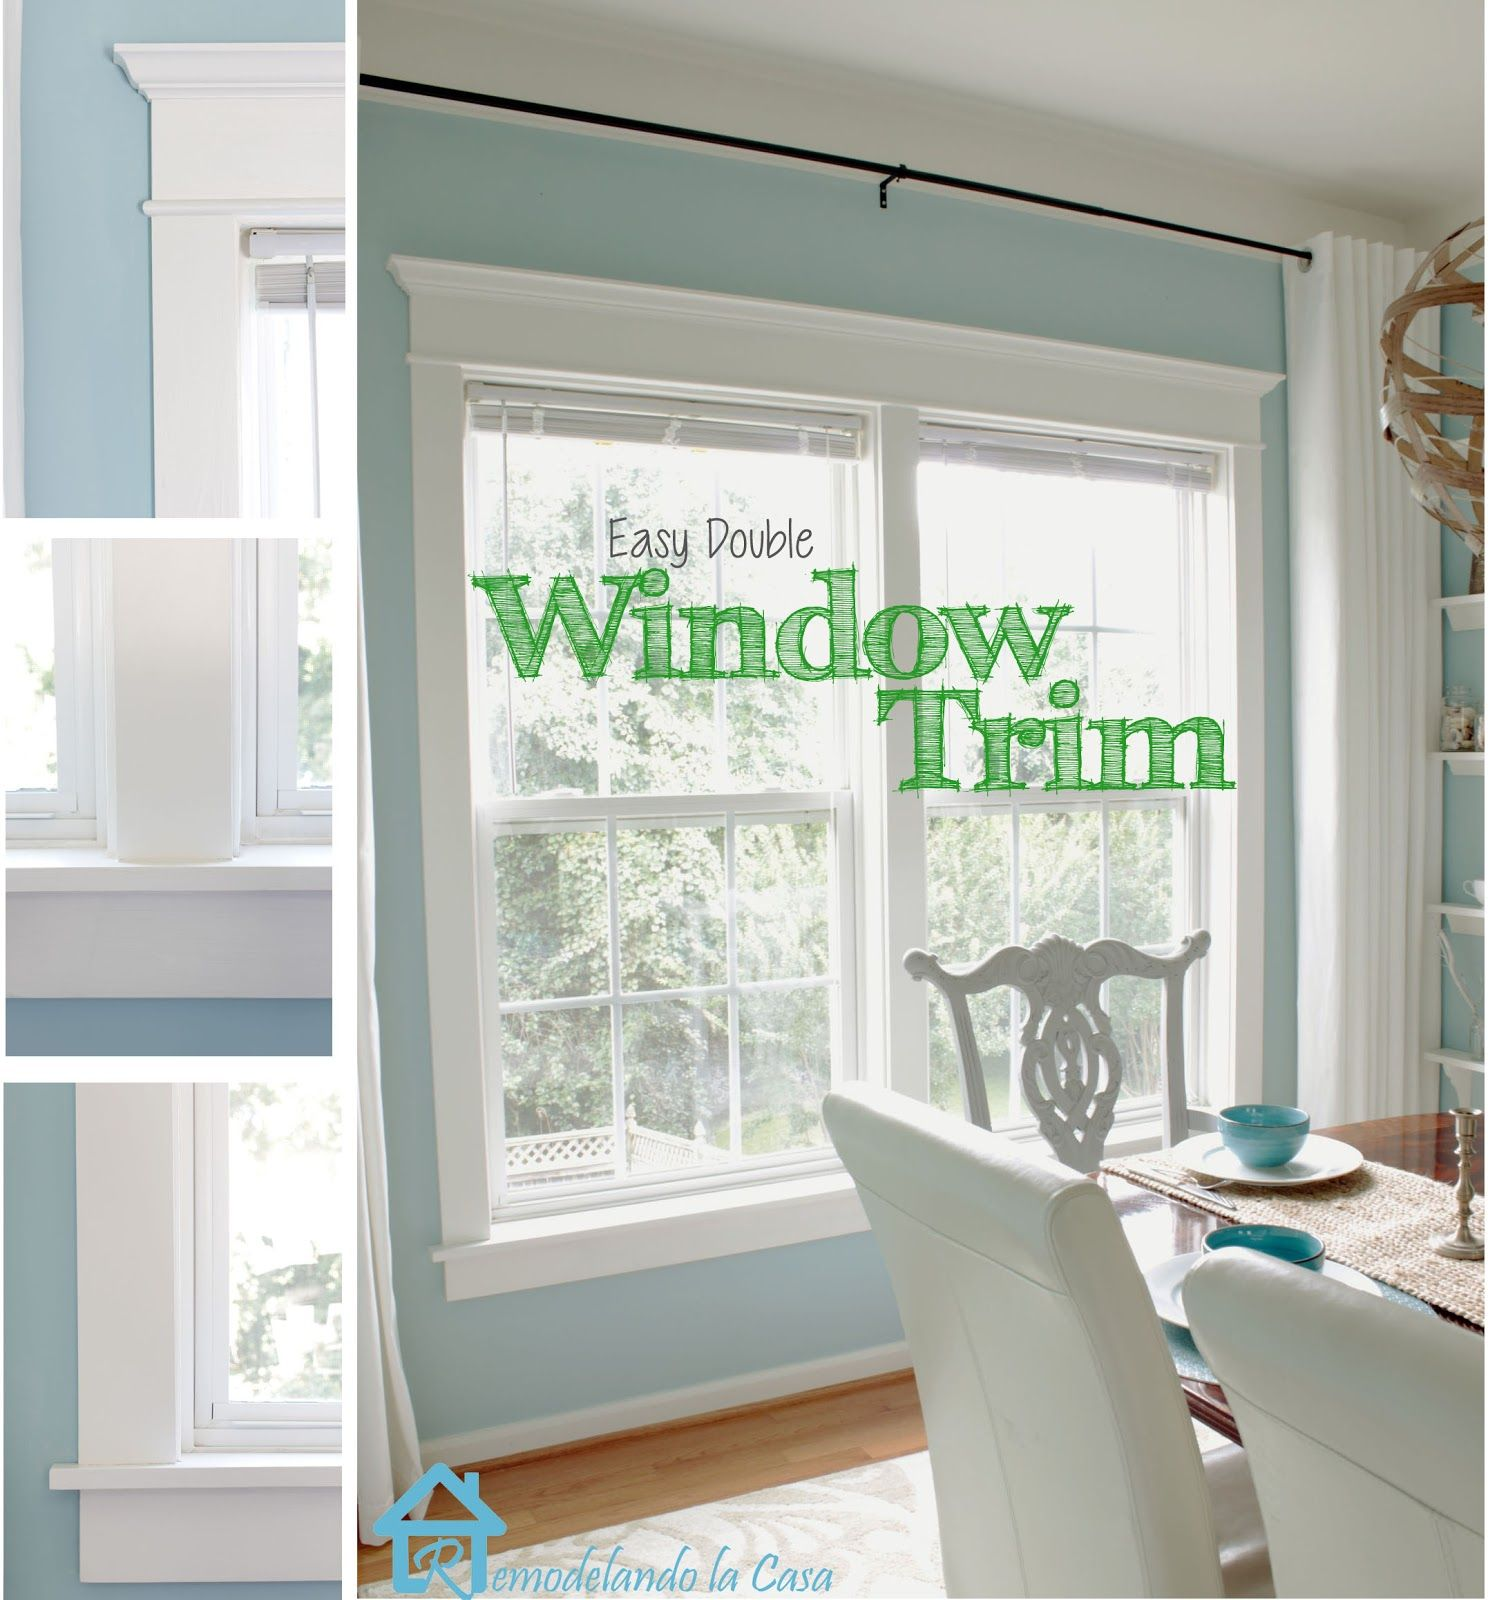 Simple interior window trim - Diy How To Add Trim Moulding To Your Windows Excellent Diy With Very Detailed Pictures For Our New Home Pinterest Moldings Window And House